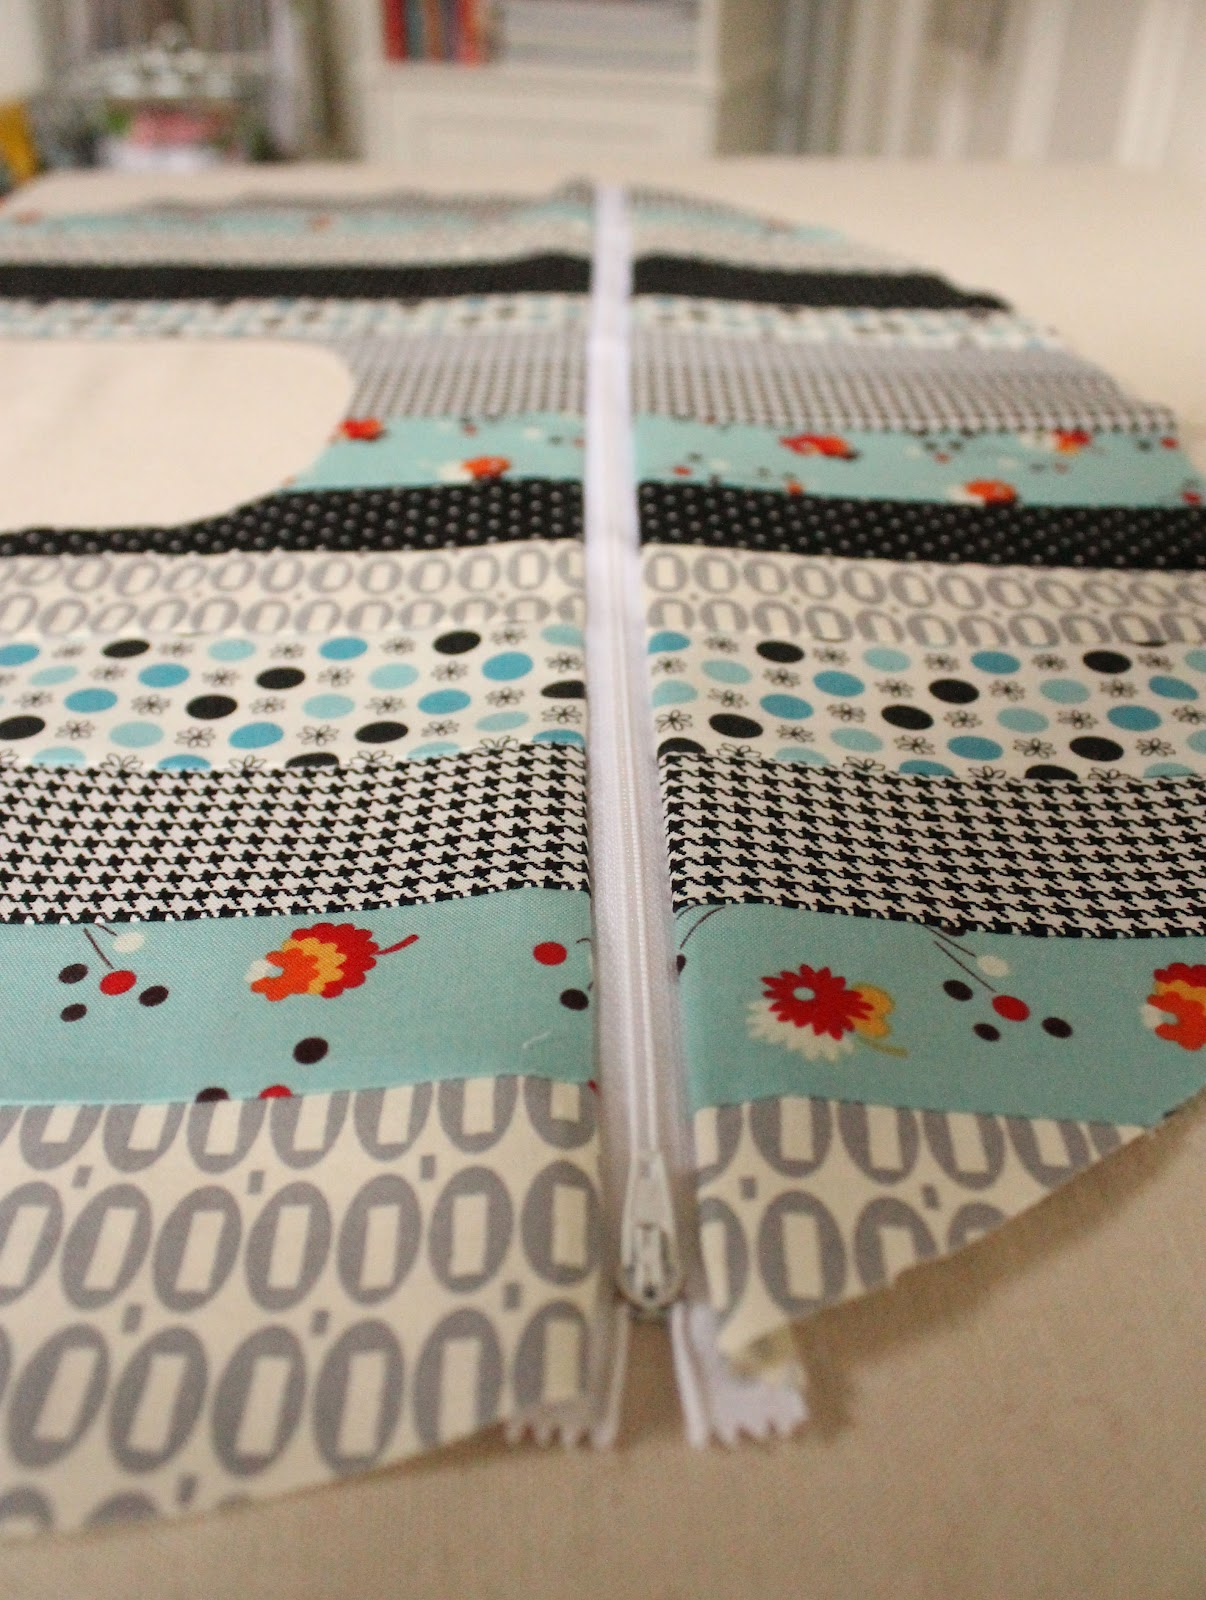 Sew Lux Fabric : Blog: Design Challenge: Patchwork Boppy Cover Tutorial